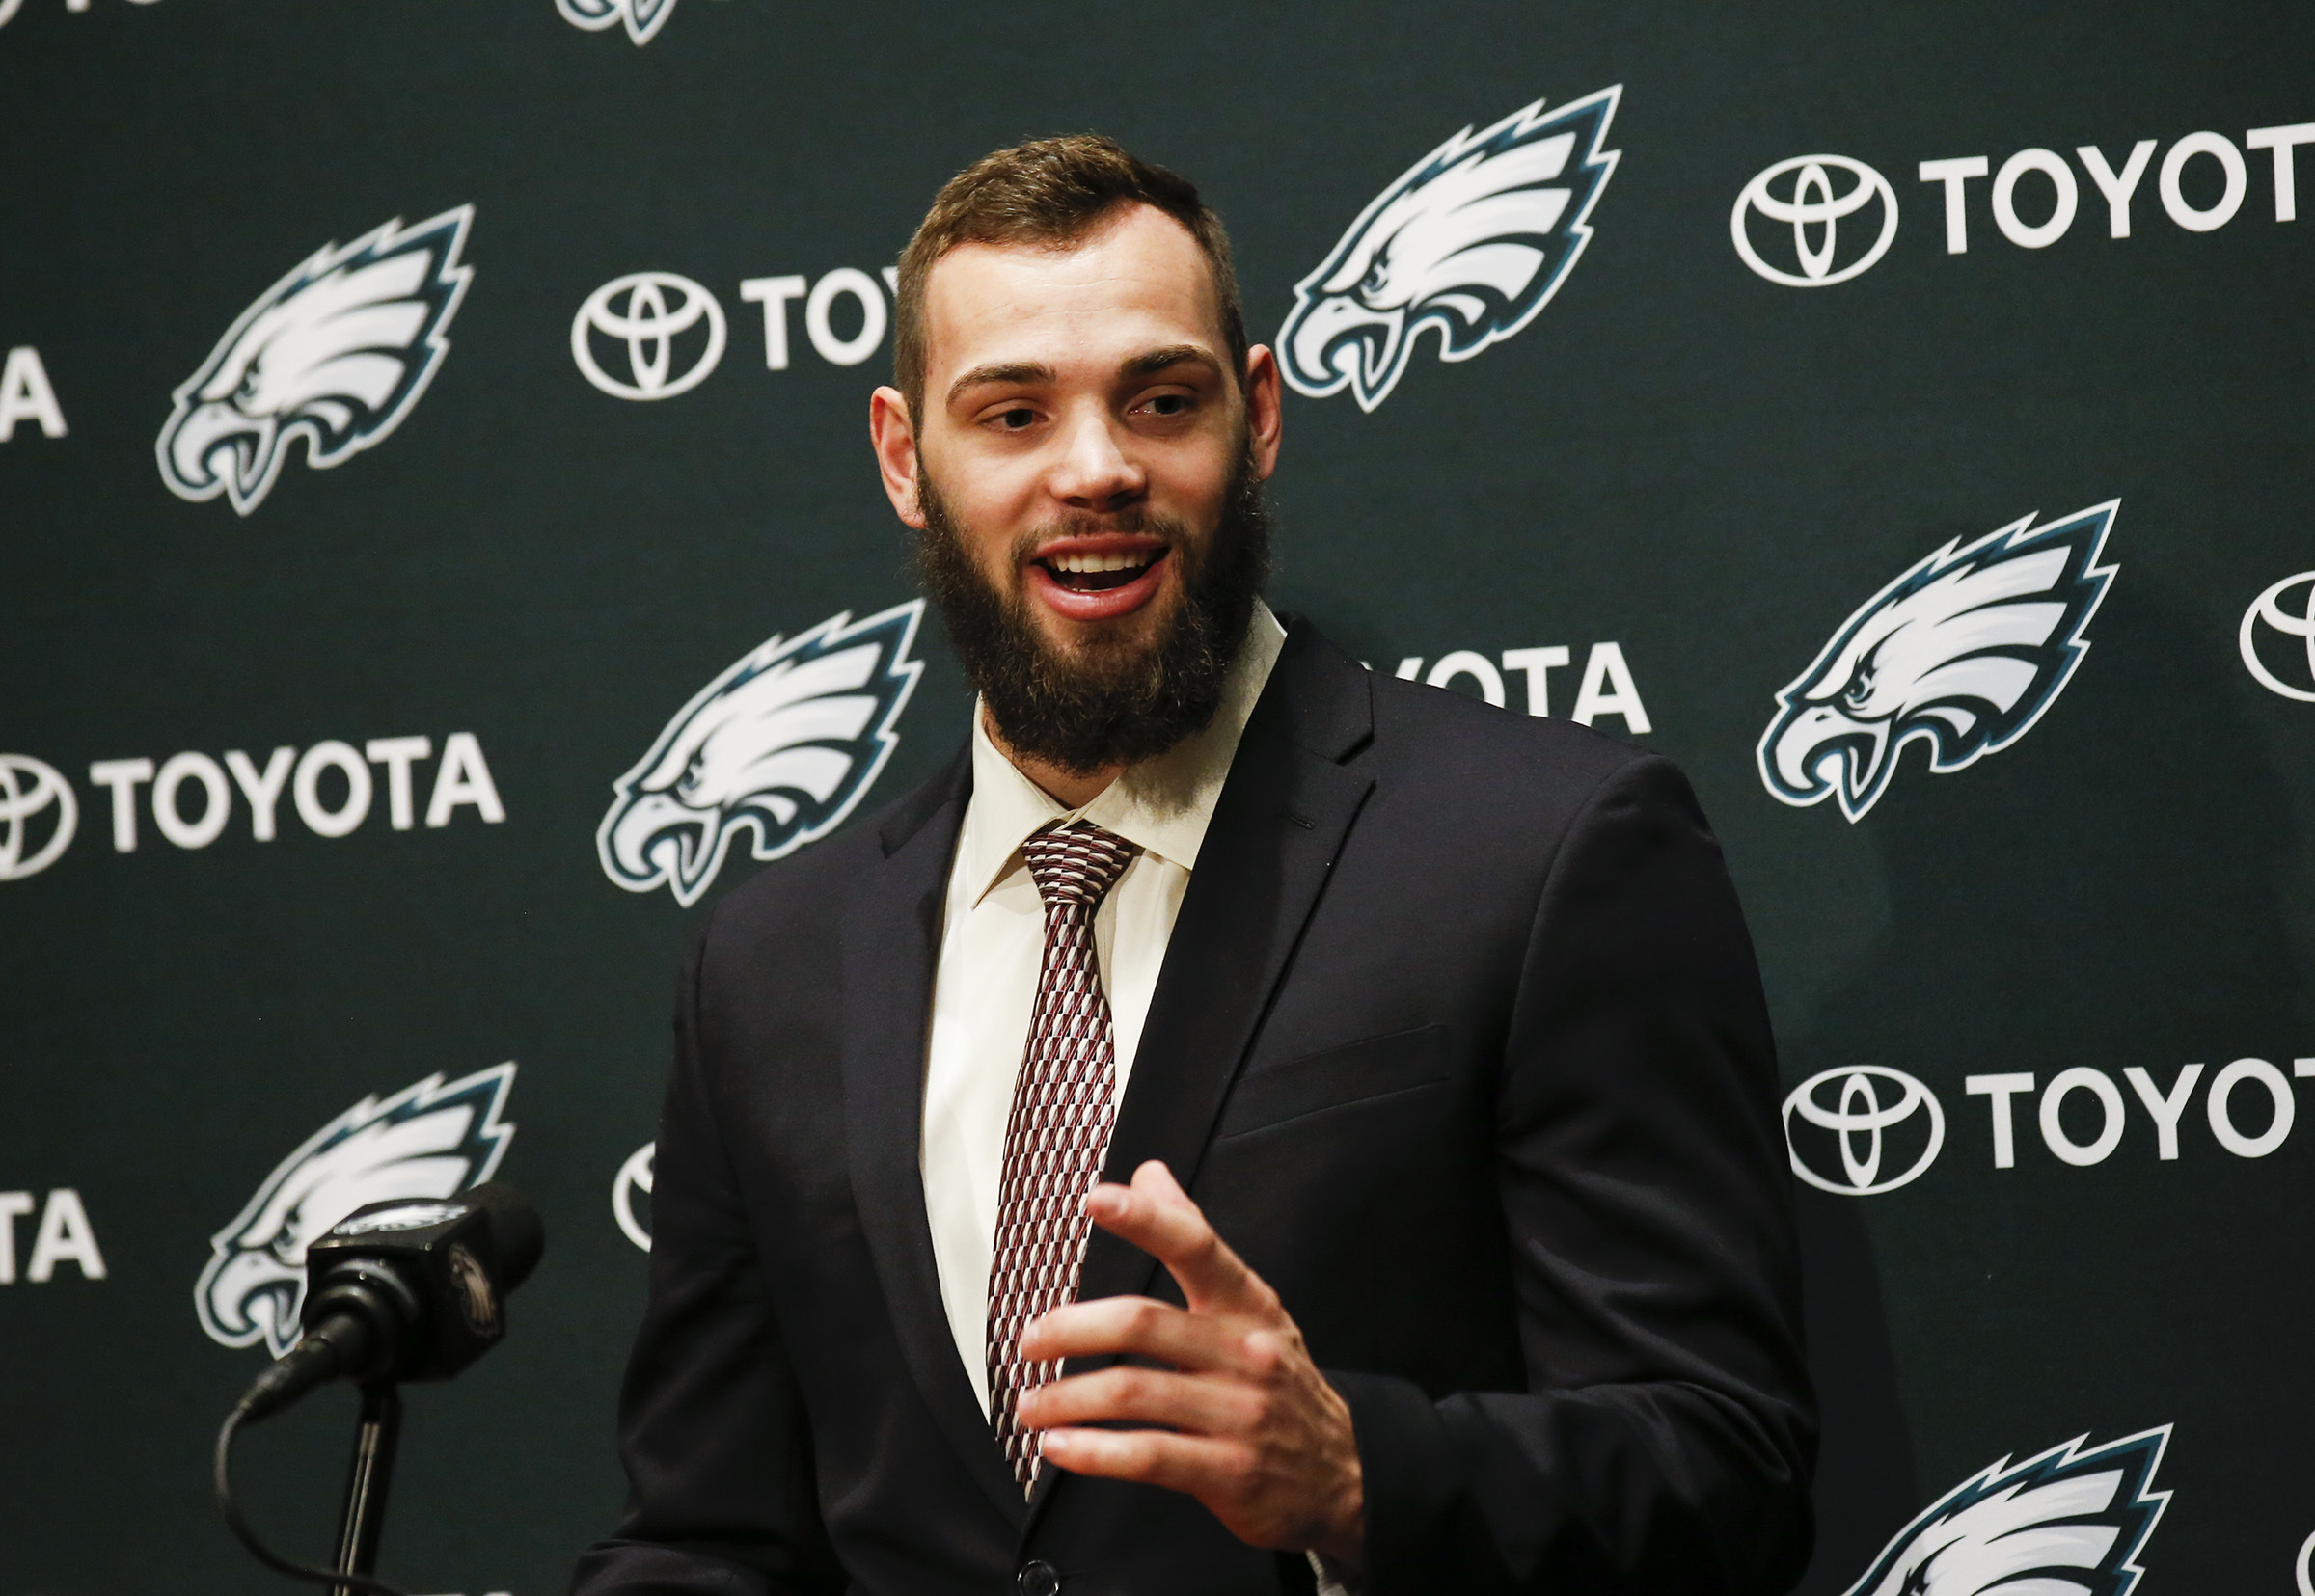 Good-natured ribbing led to rookie tight end Dallas Goedert shaving his beard for fear of looking a little too Pennsylvania Dutch.